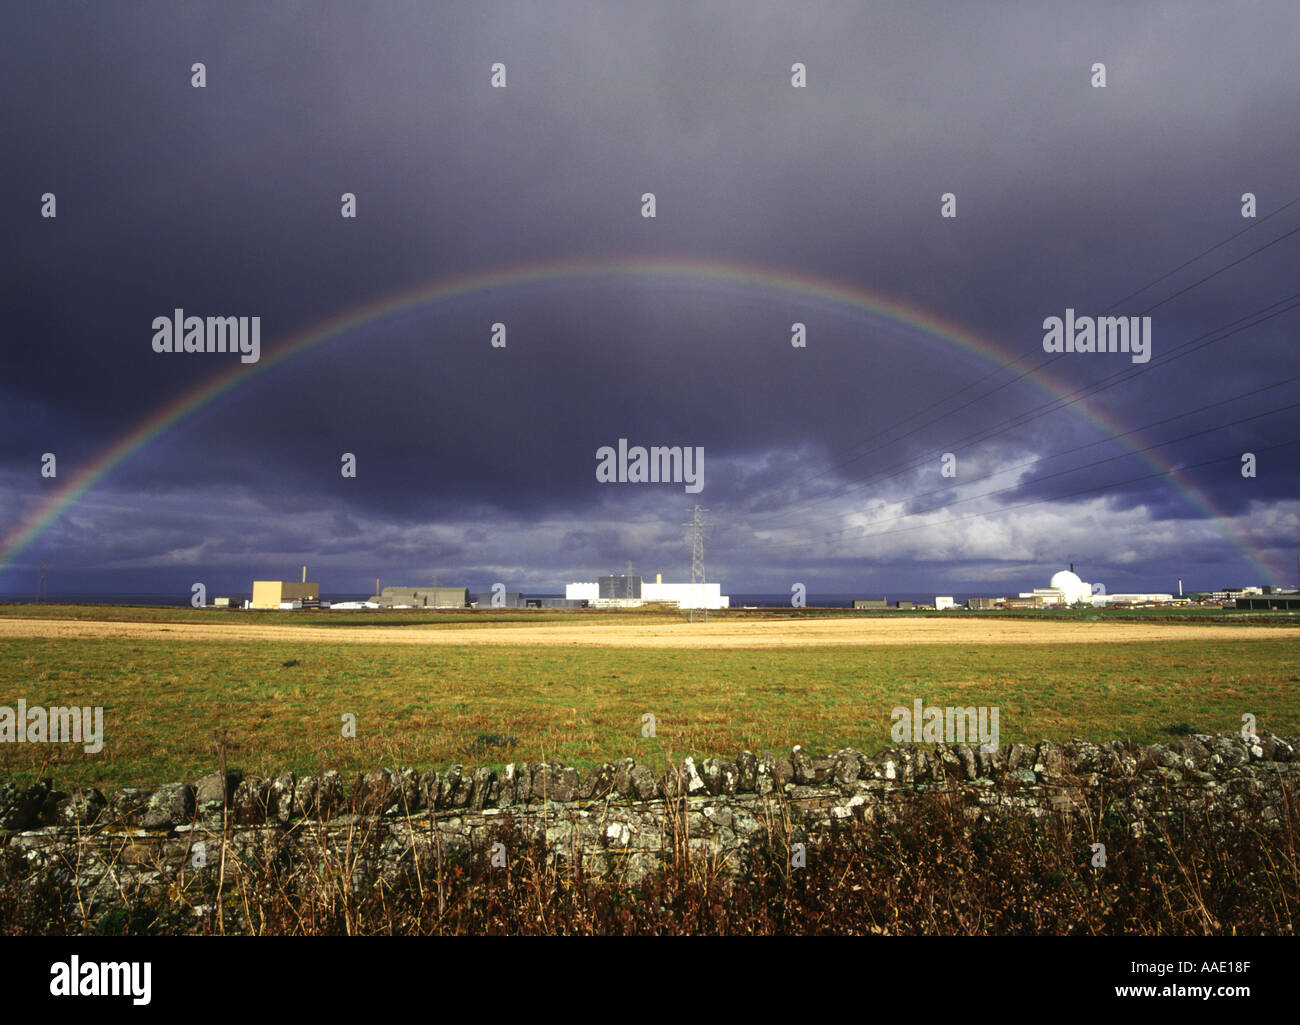 dh  DOUNREAY CAITHNESS Nuclear atomic reactor electricity power station rainbow black cloud - Stock Image